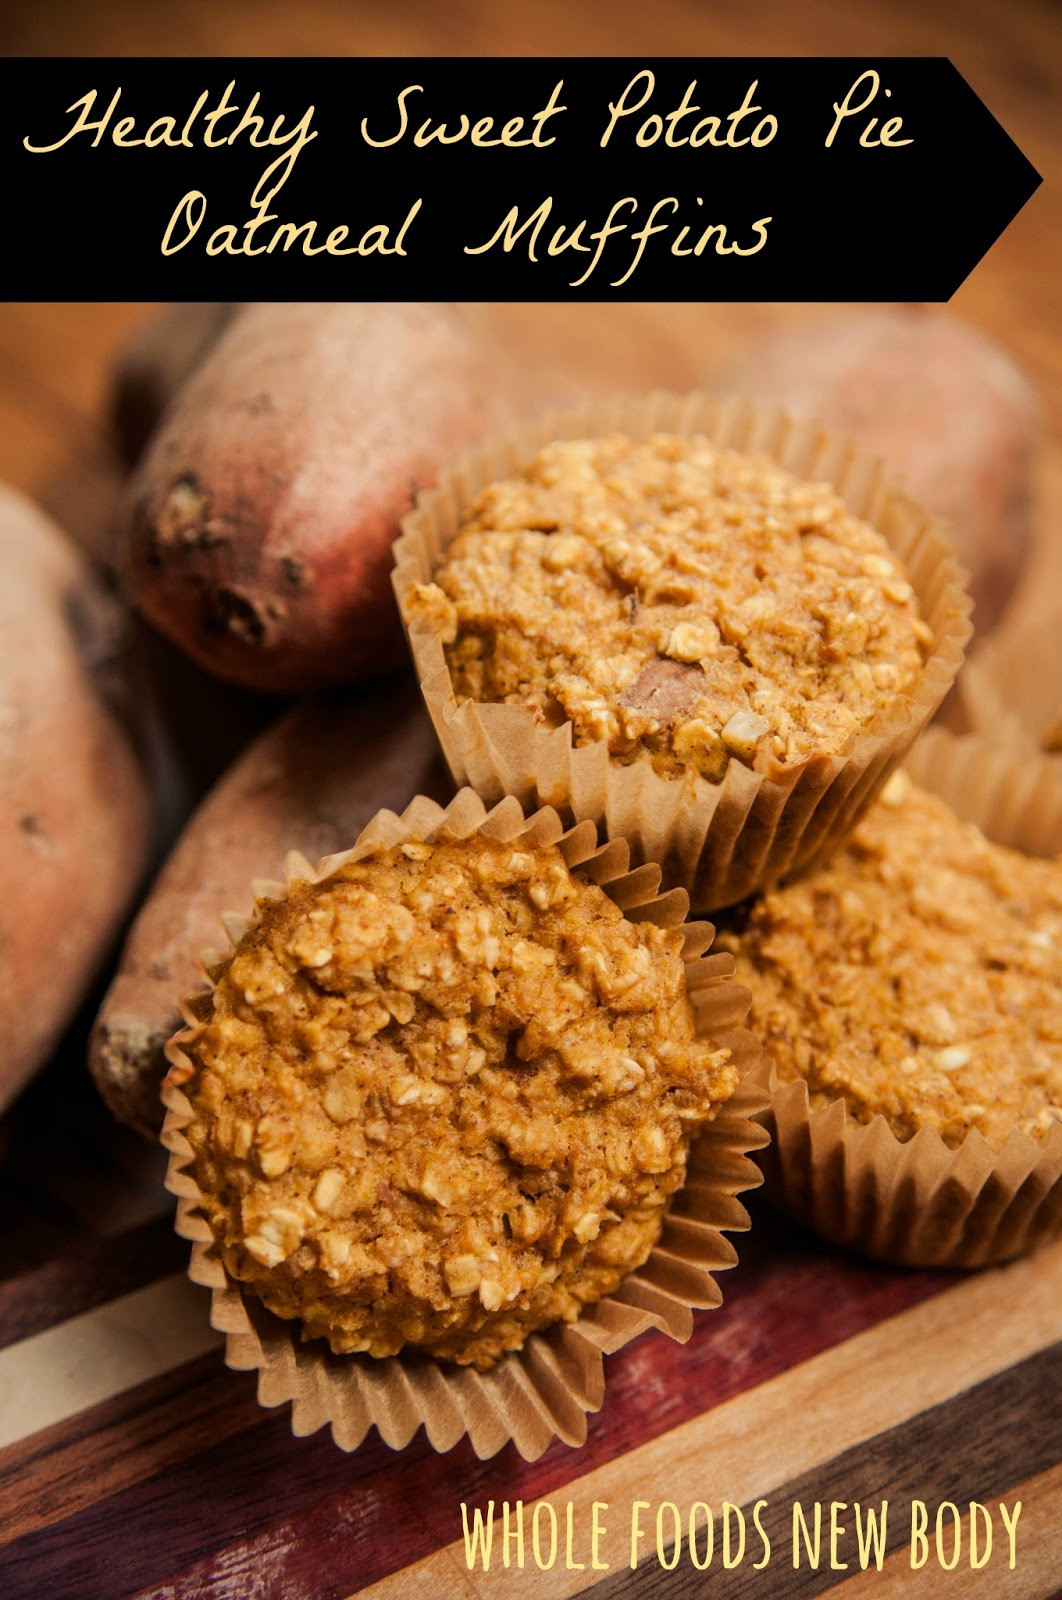 Is Sweet Potato Pie Healthy  Whole Foods New Body Healthy Sweet Potato Pie Oatmeal